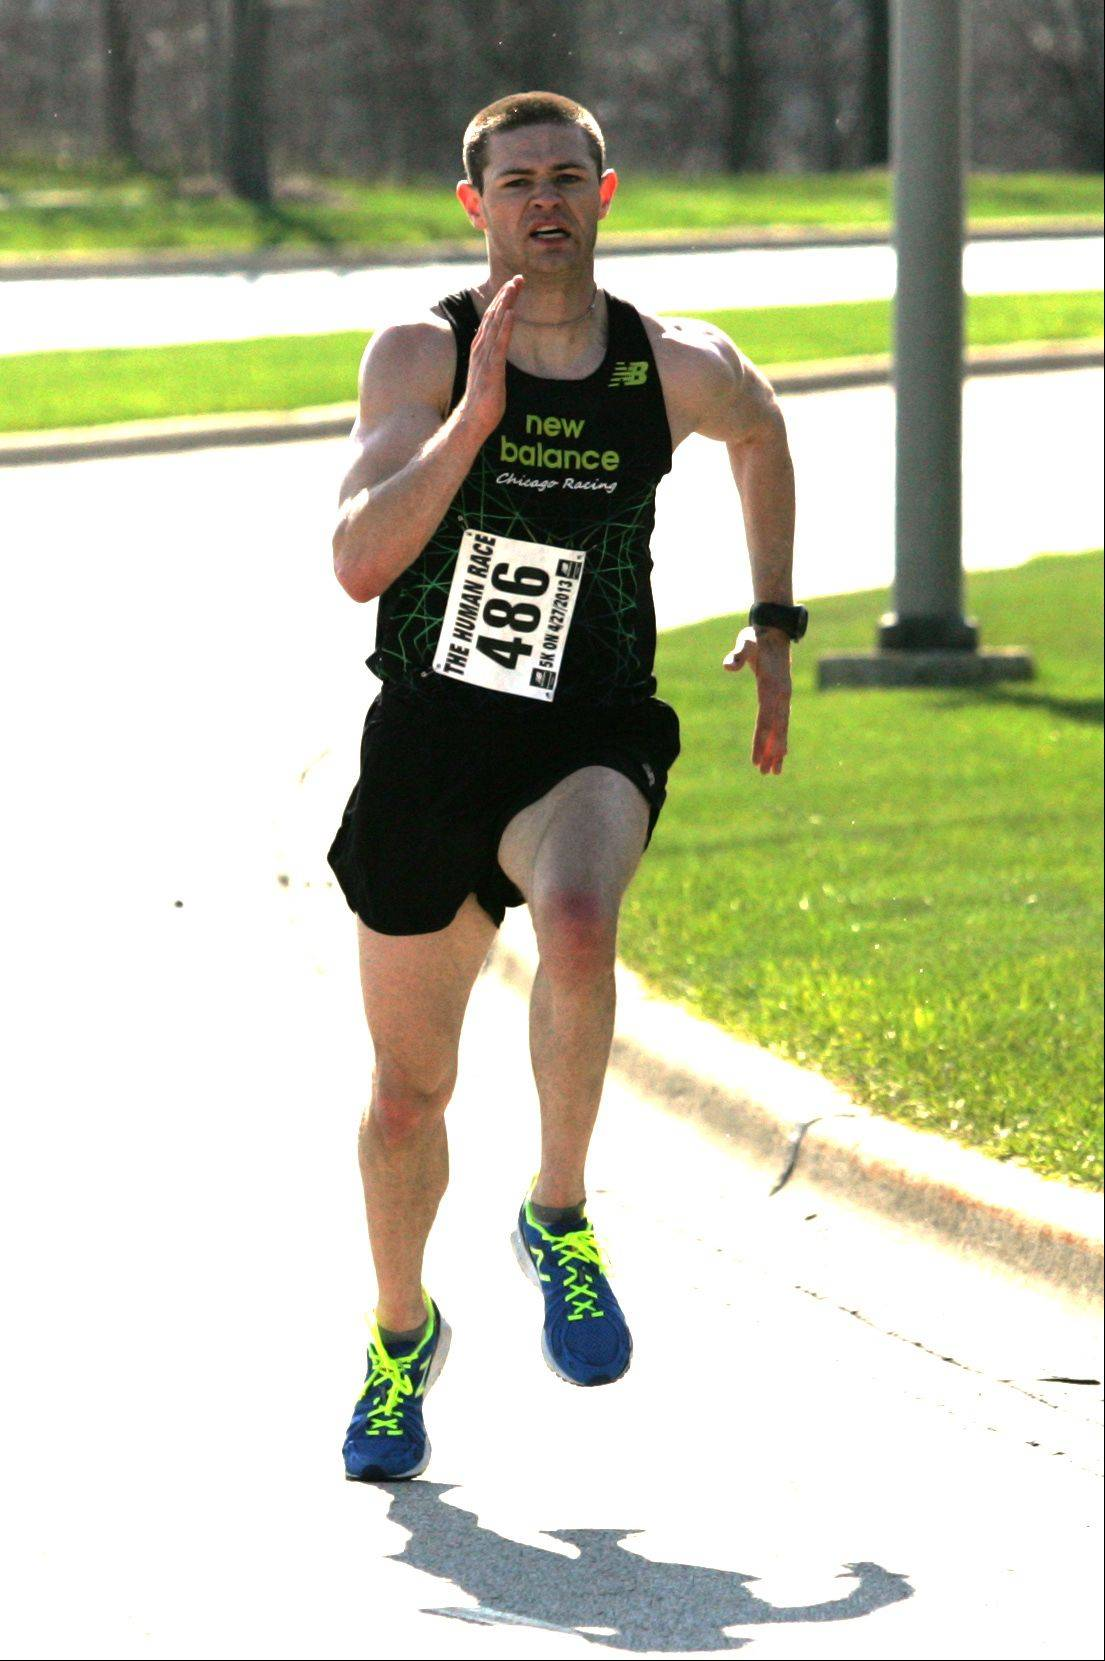 Patrick Austin of Plattville, Ill. wins the second annual Giving DuPage Human Race, a 5K run and 2-mile held Saturday morning in Downers Grove.